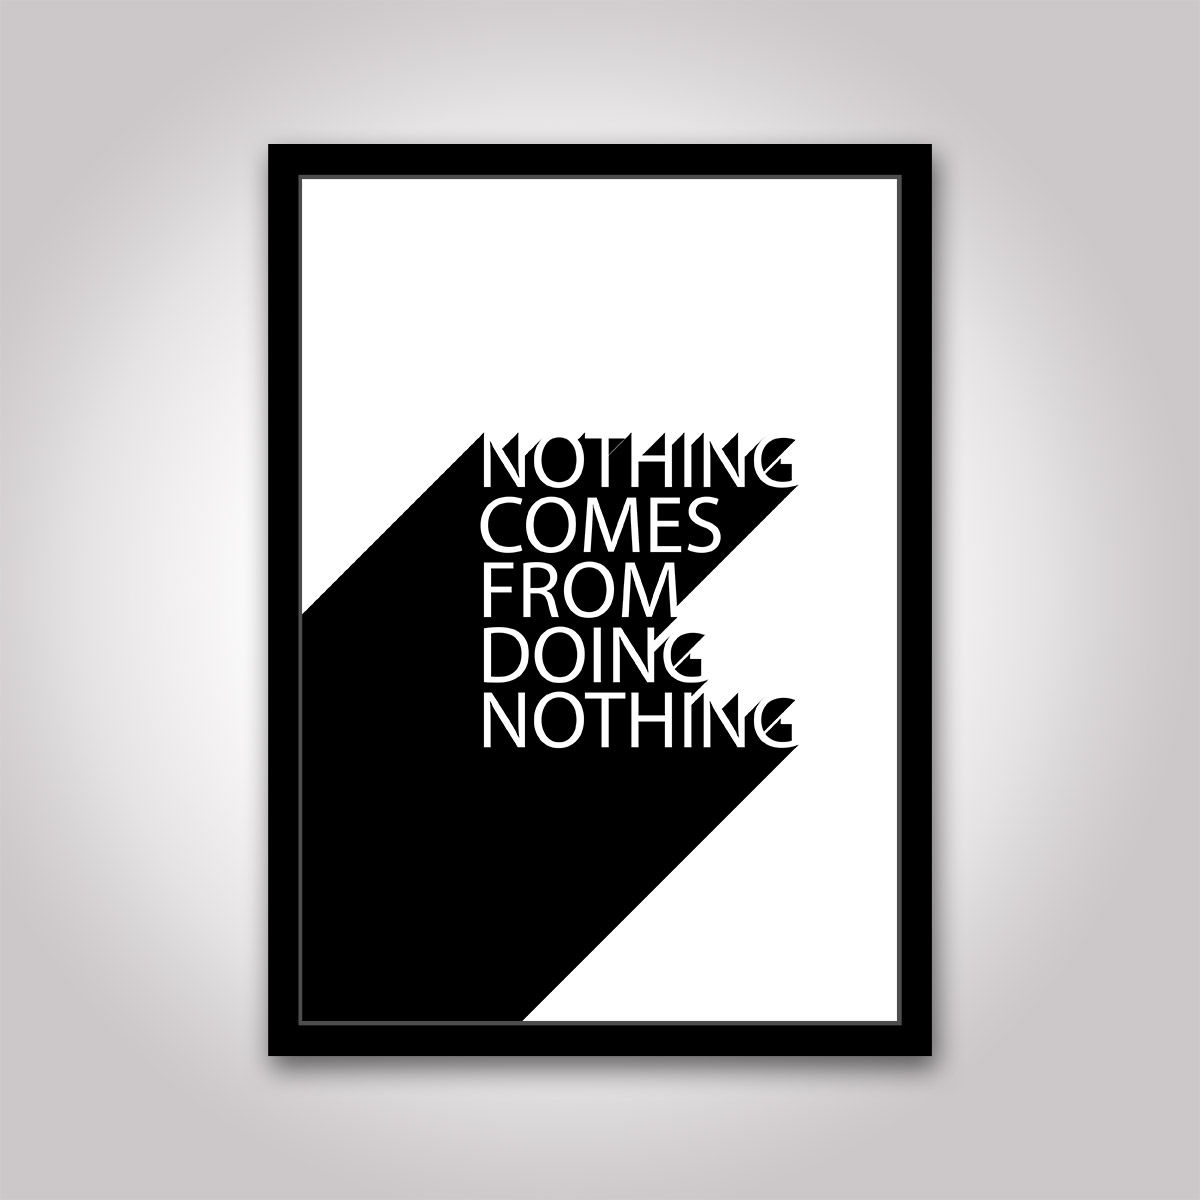 Poster: Nothing comes from doing nothing